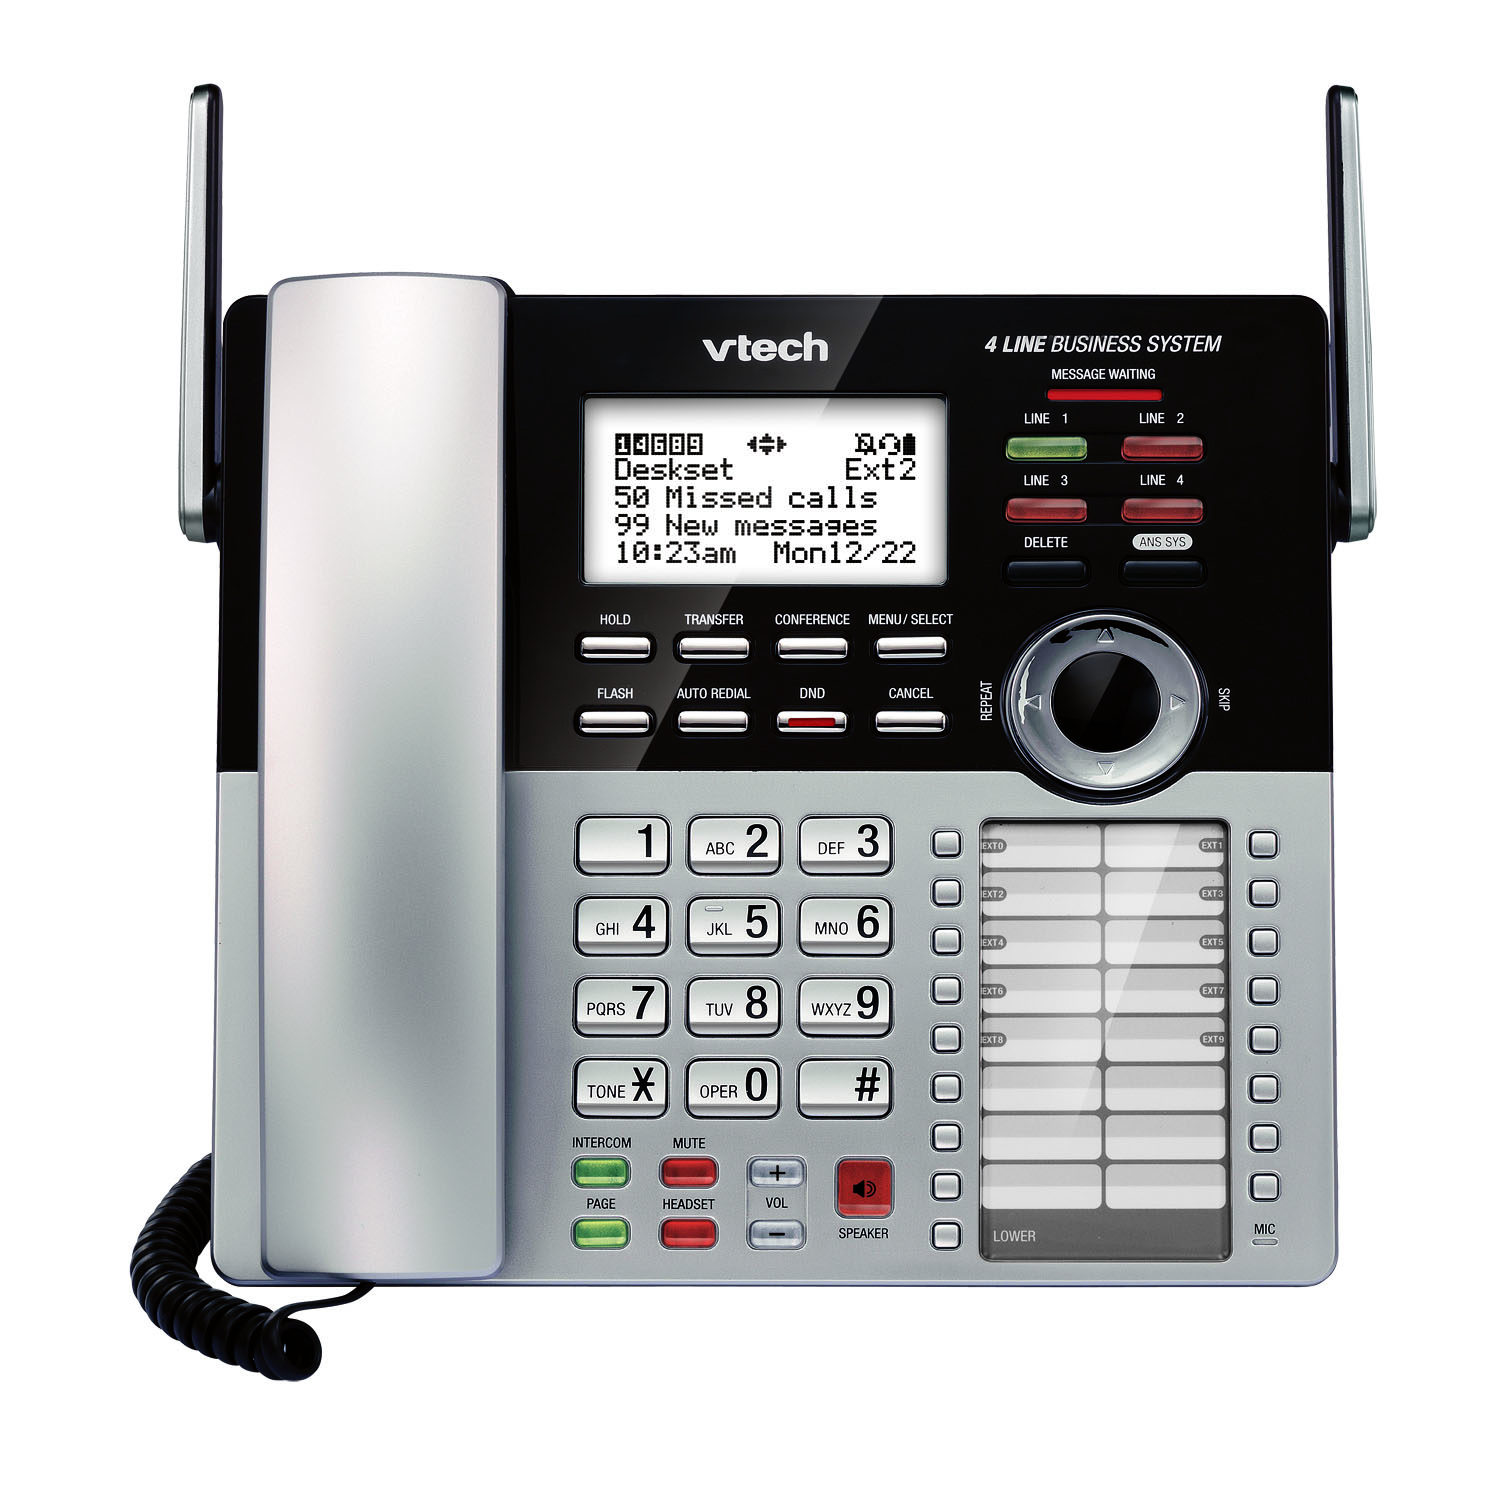 VTech CM18245 4 Line Small Business System deskset